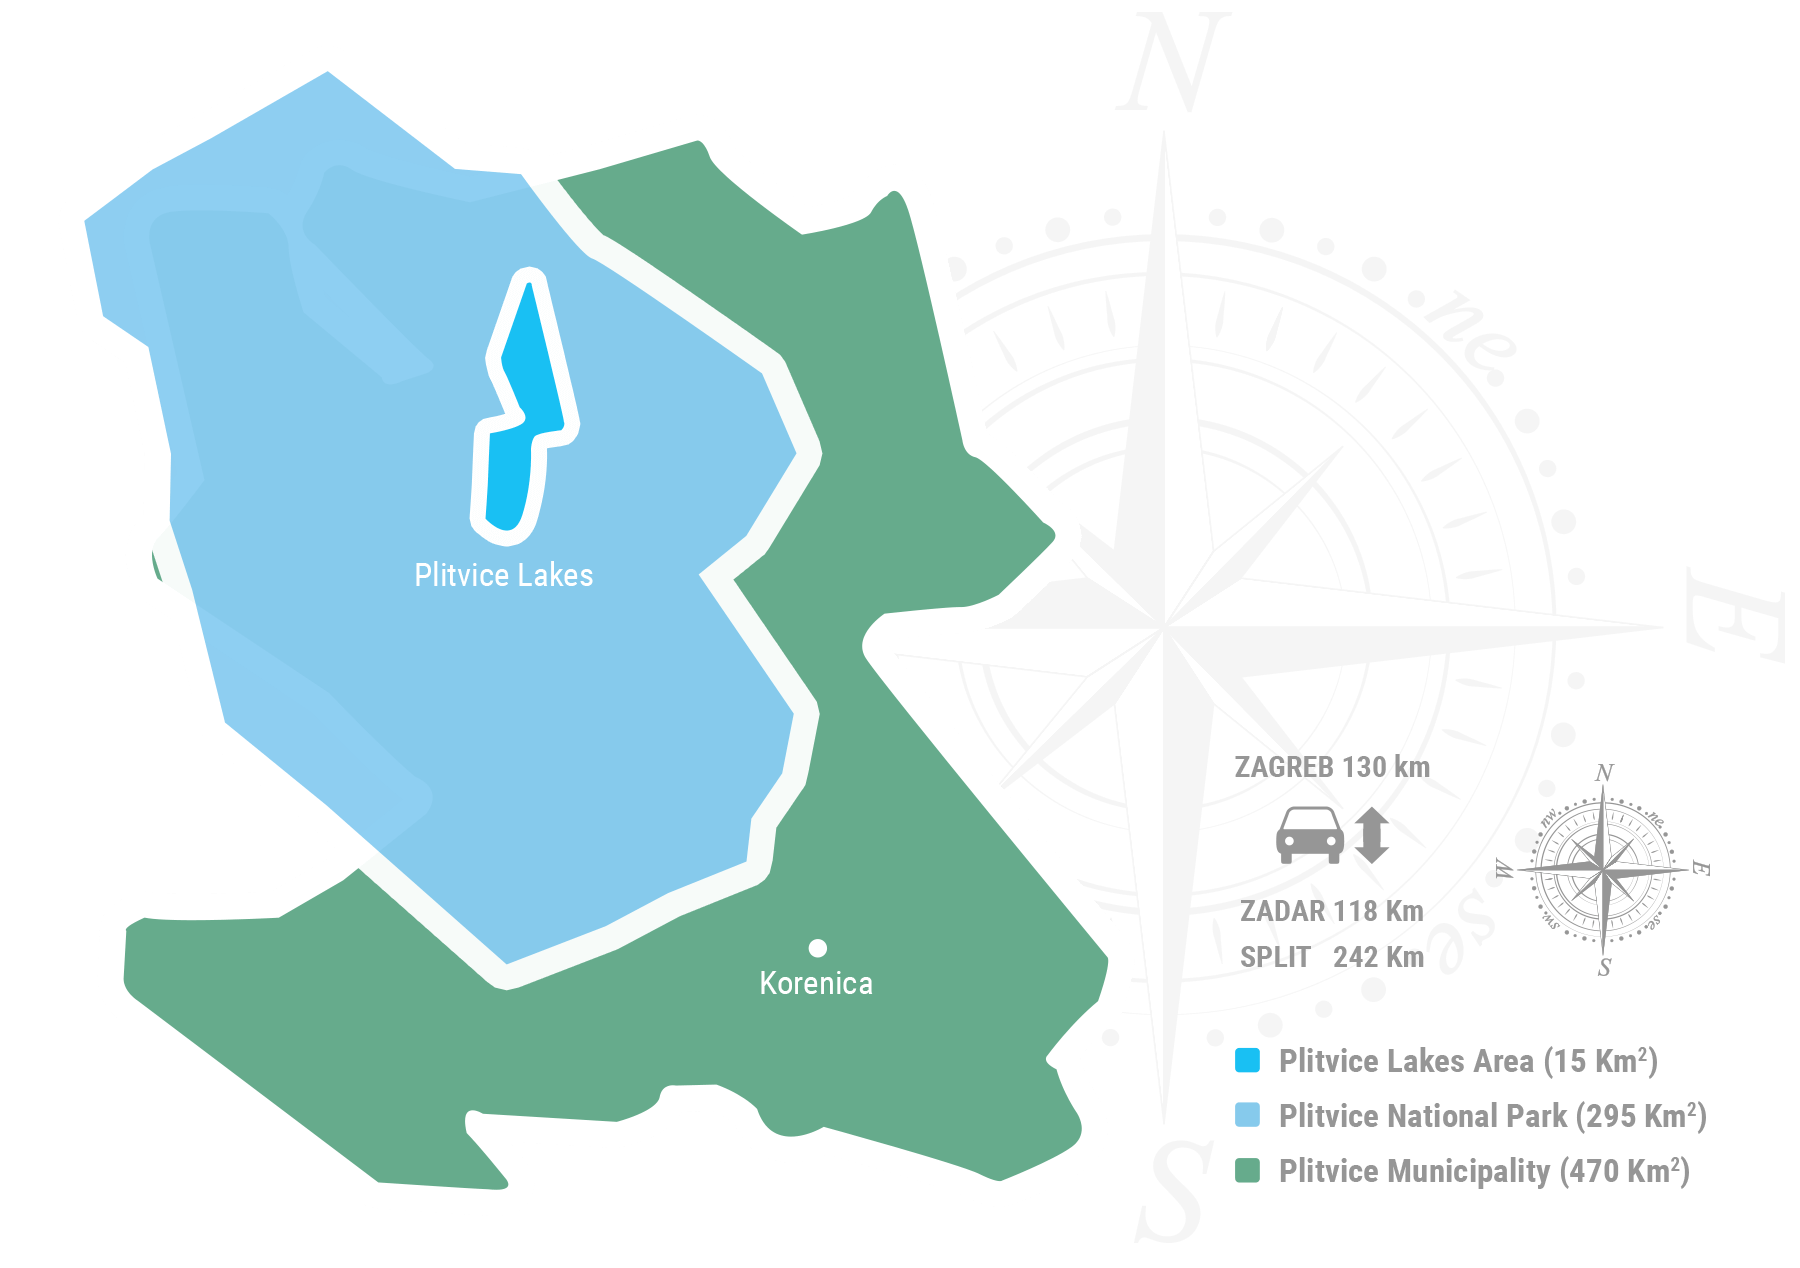 Plitvice County Map